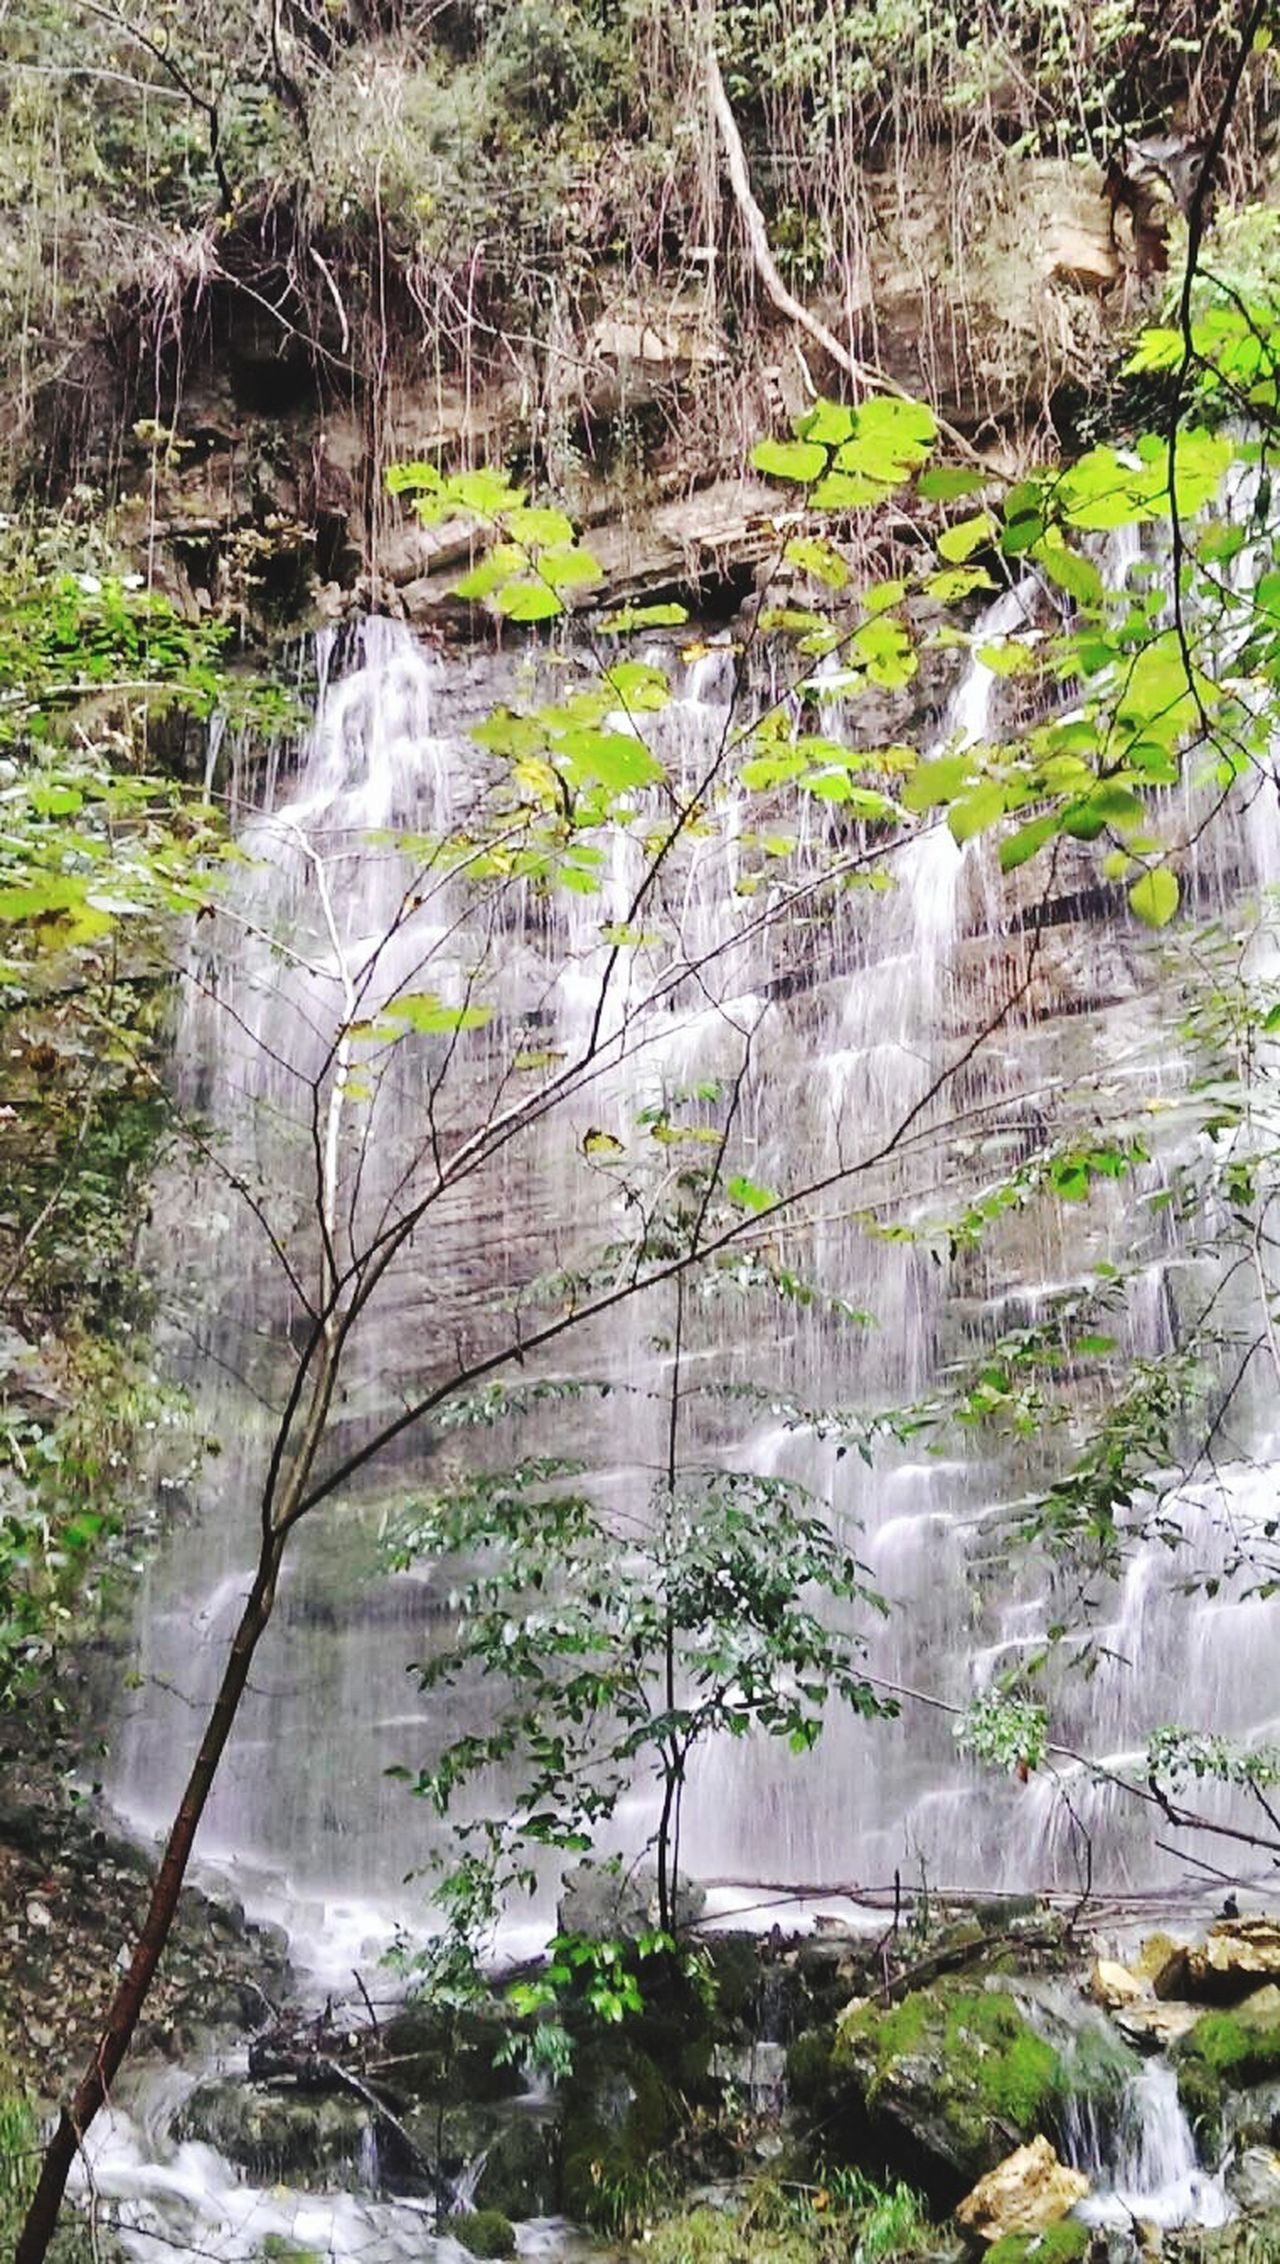 Falling Water Nature Forest Eternity Lombardia Noneedfilter Doyoulikeit? Silence Peace